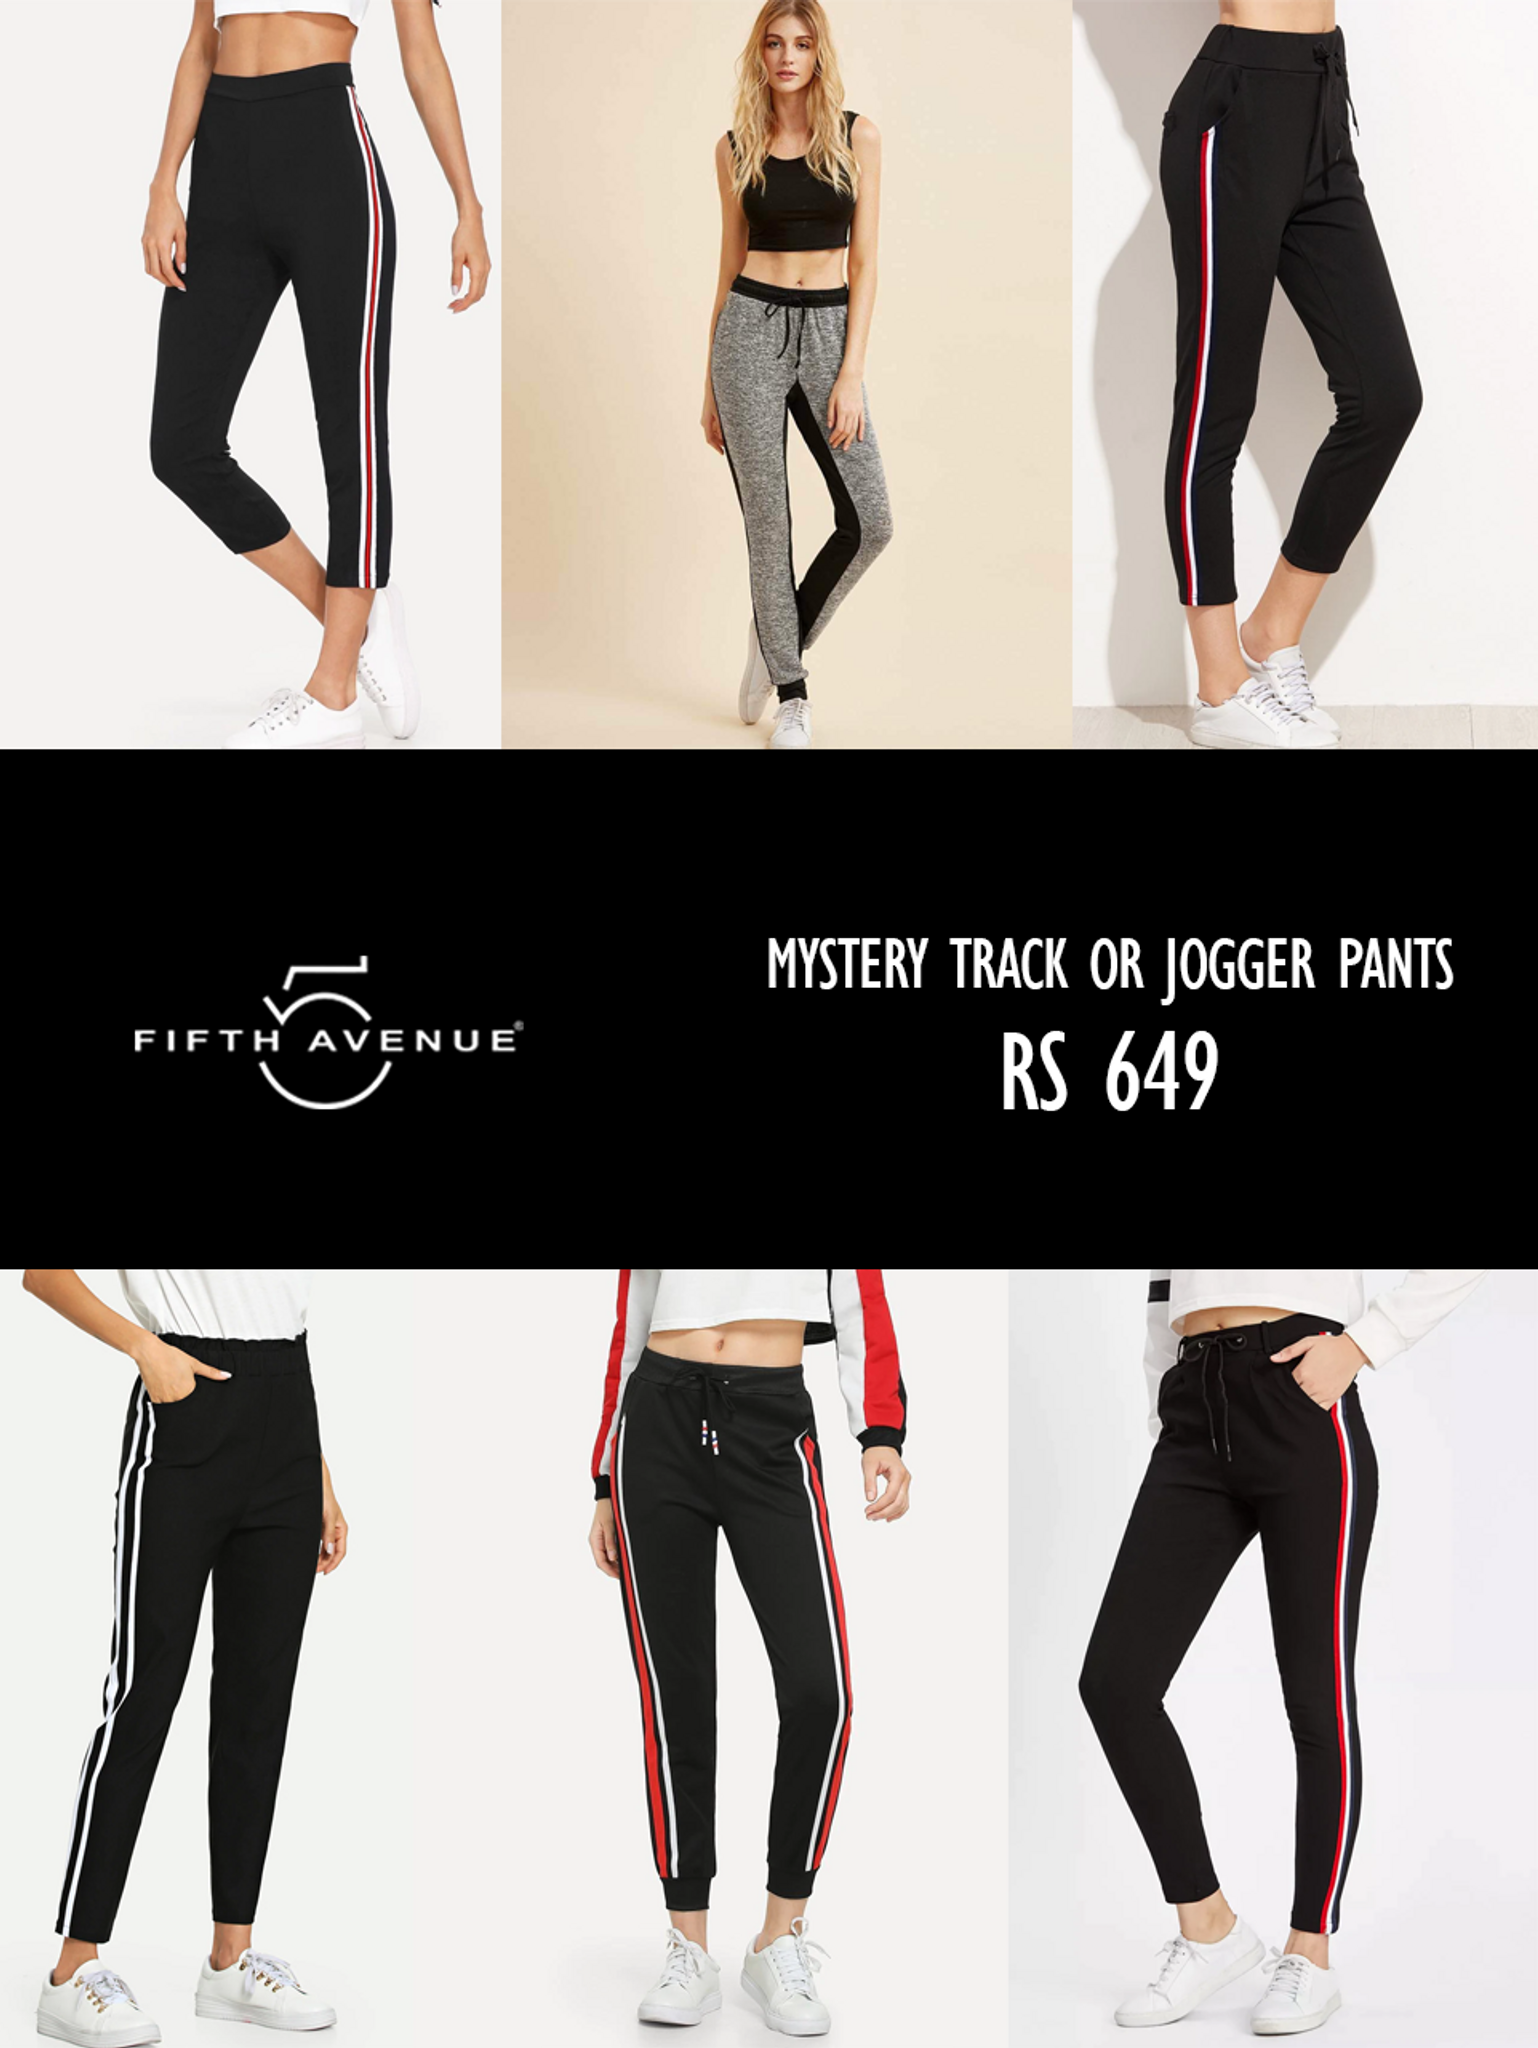 Fifth Avenue Women's Mystery Mania - Mystery Track/Jogger Pants